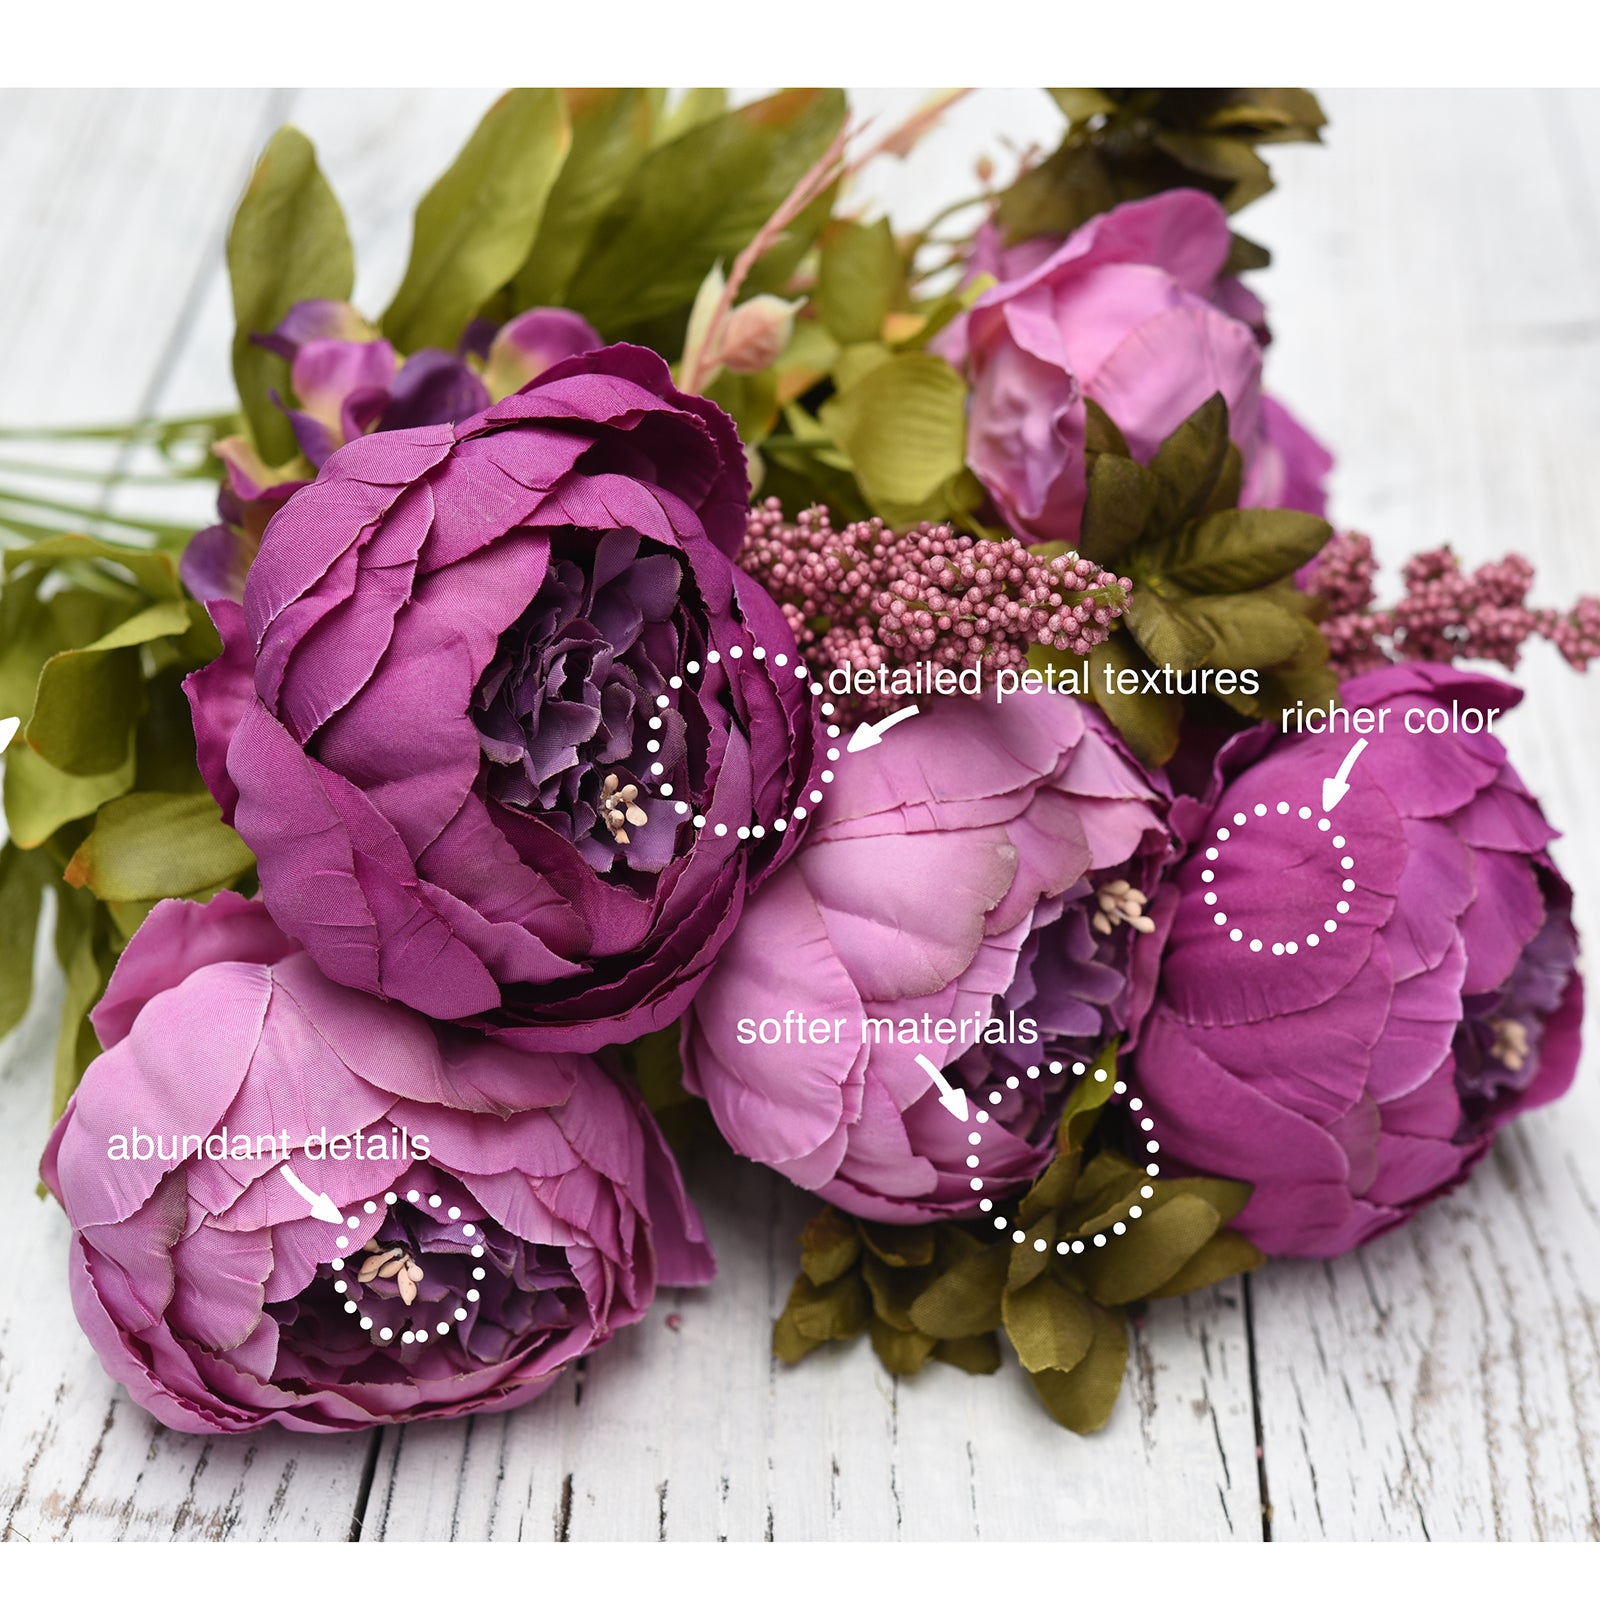 FiveSeasonStuff 2 Bundles Plum Purple|White Peonies Artificial Flower Bouquet